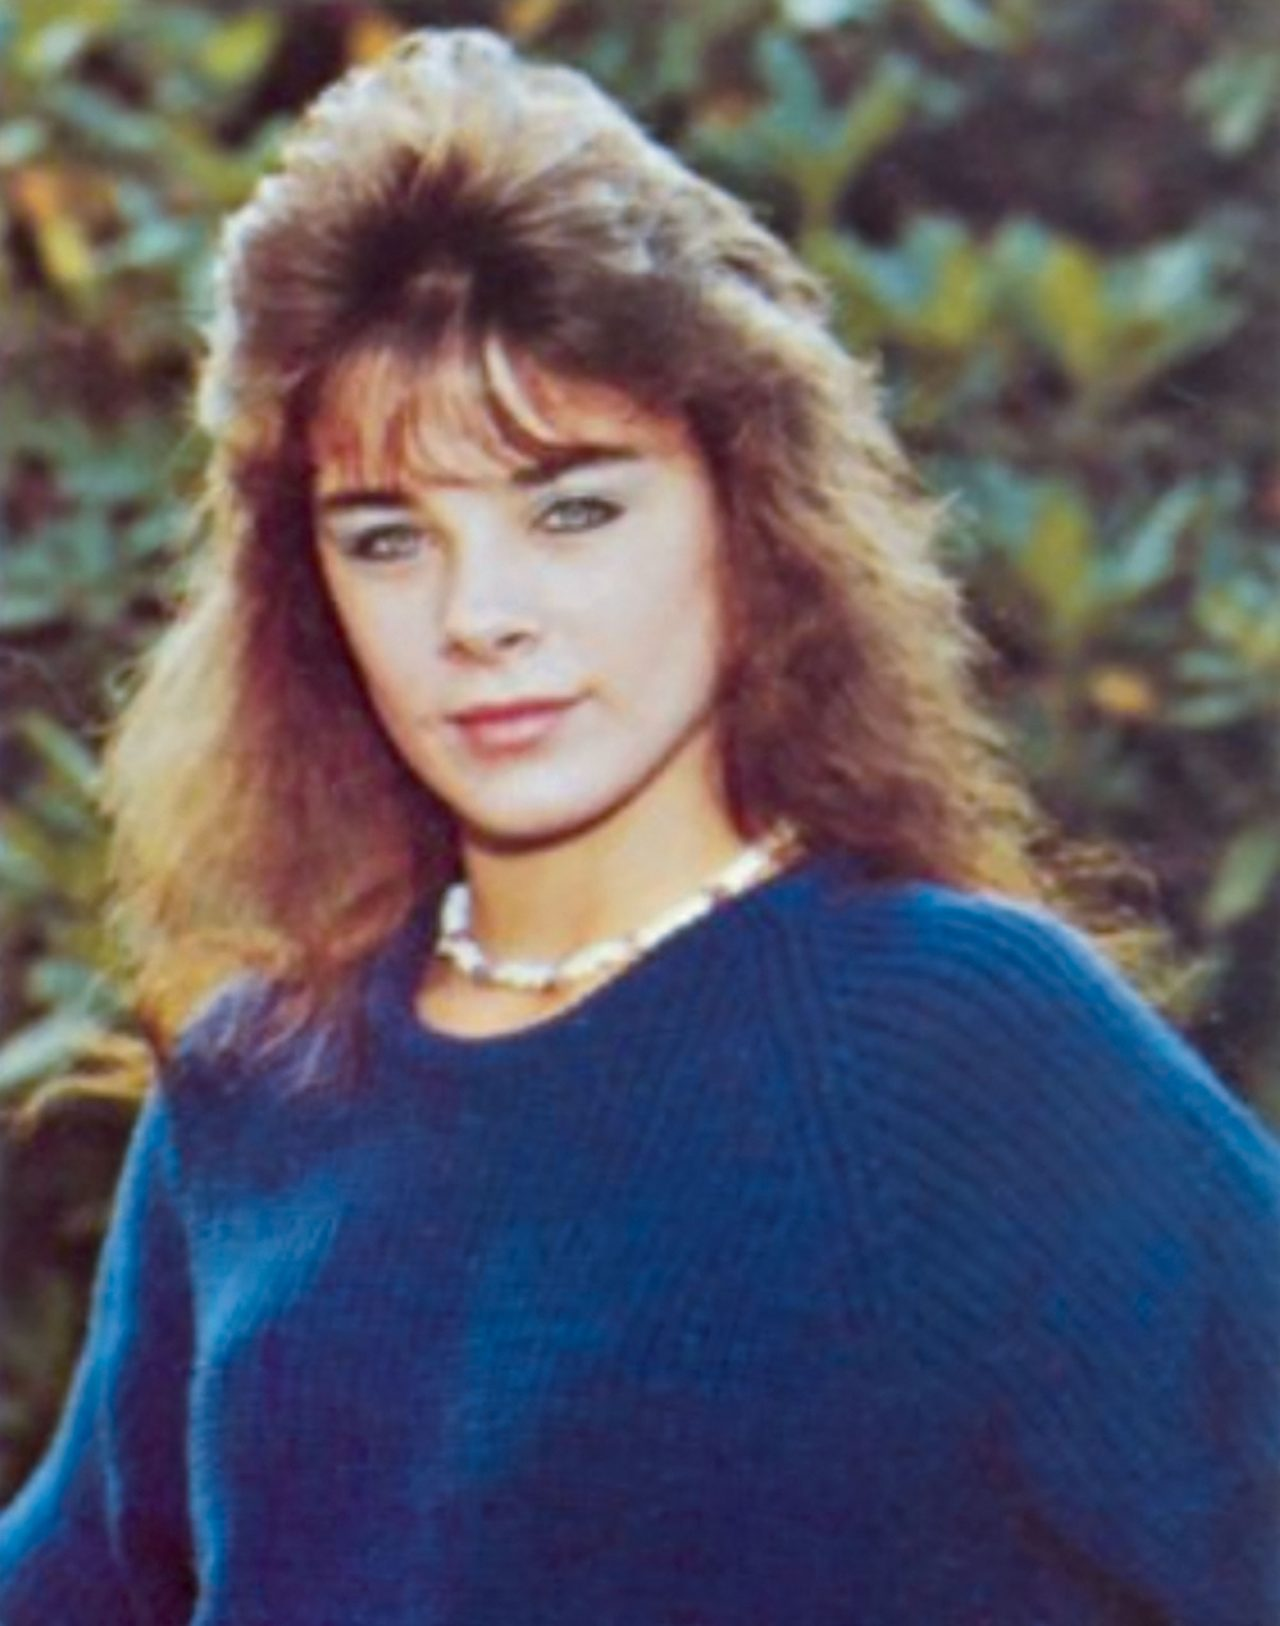 High school yearbook portrait of Kelley Jaeger, victim of Vinlander Travis Ricci; Photo Courtesy 1987 yearbook for Division Avenue High School in Levittown, NY